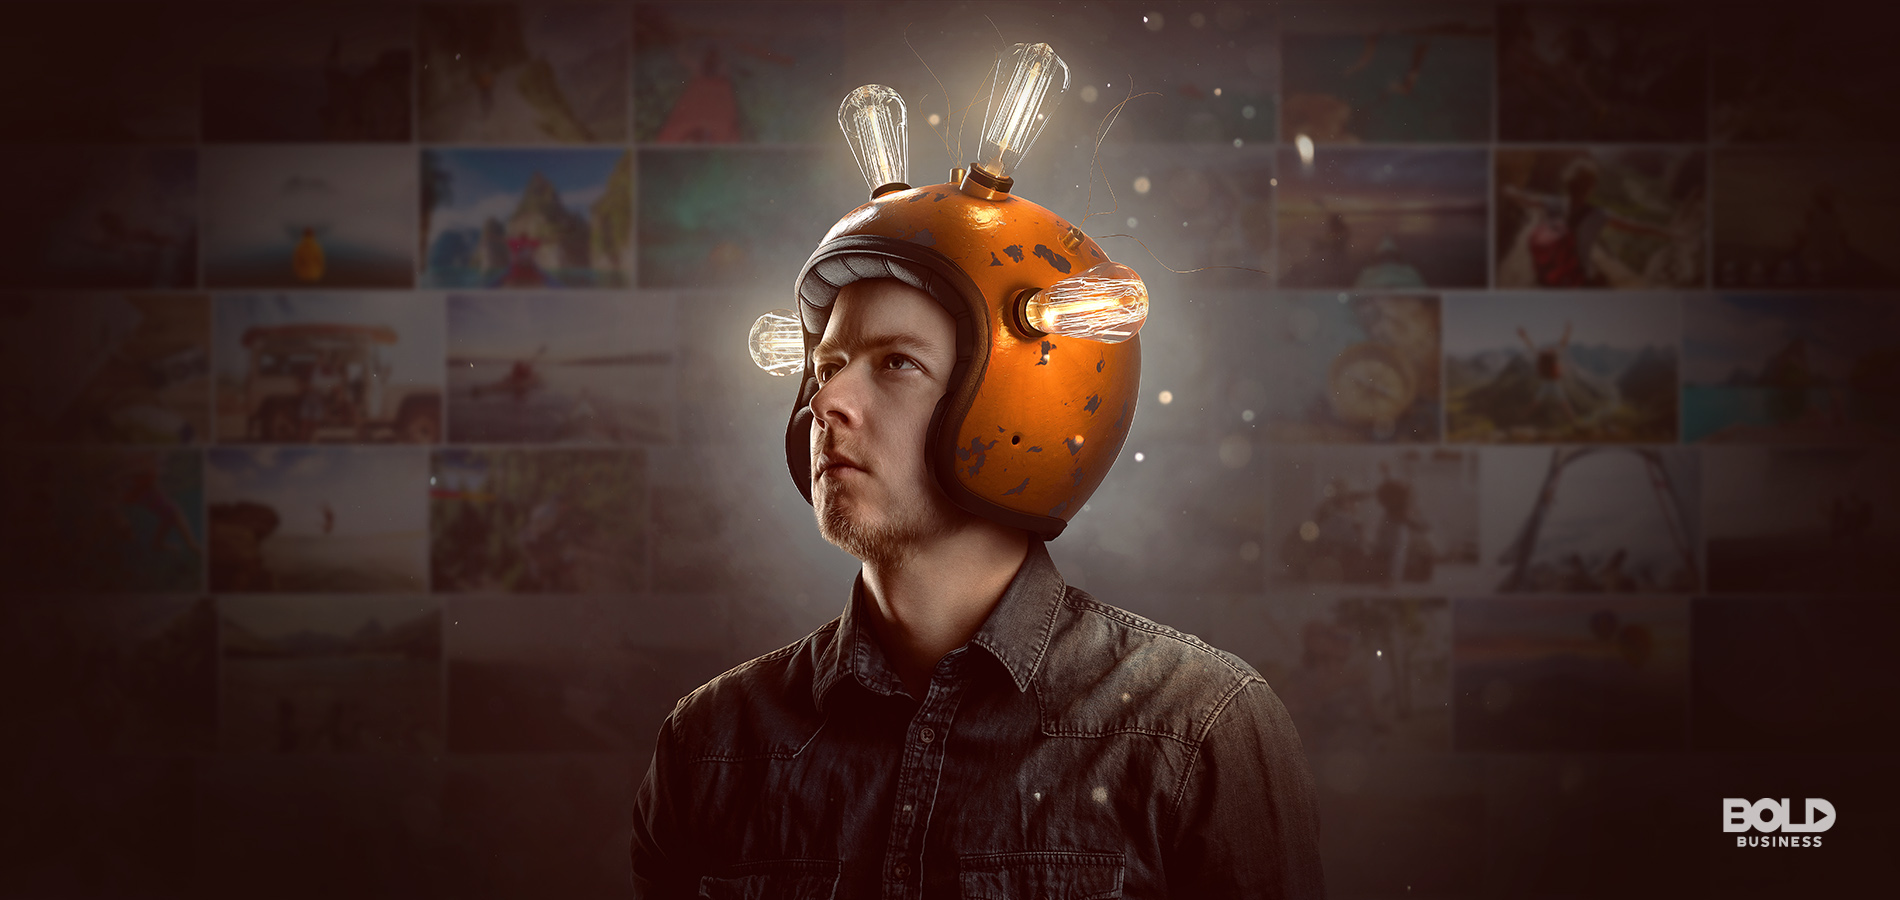 a photo of a man wearing a helmet with lighted bulbs, symbolizing the advancements in brain computer interface today